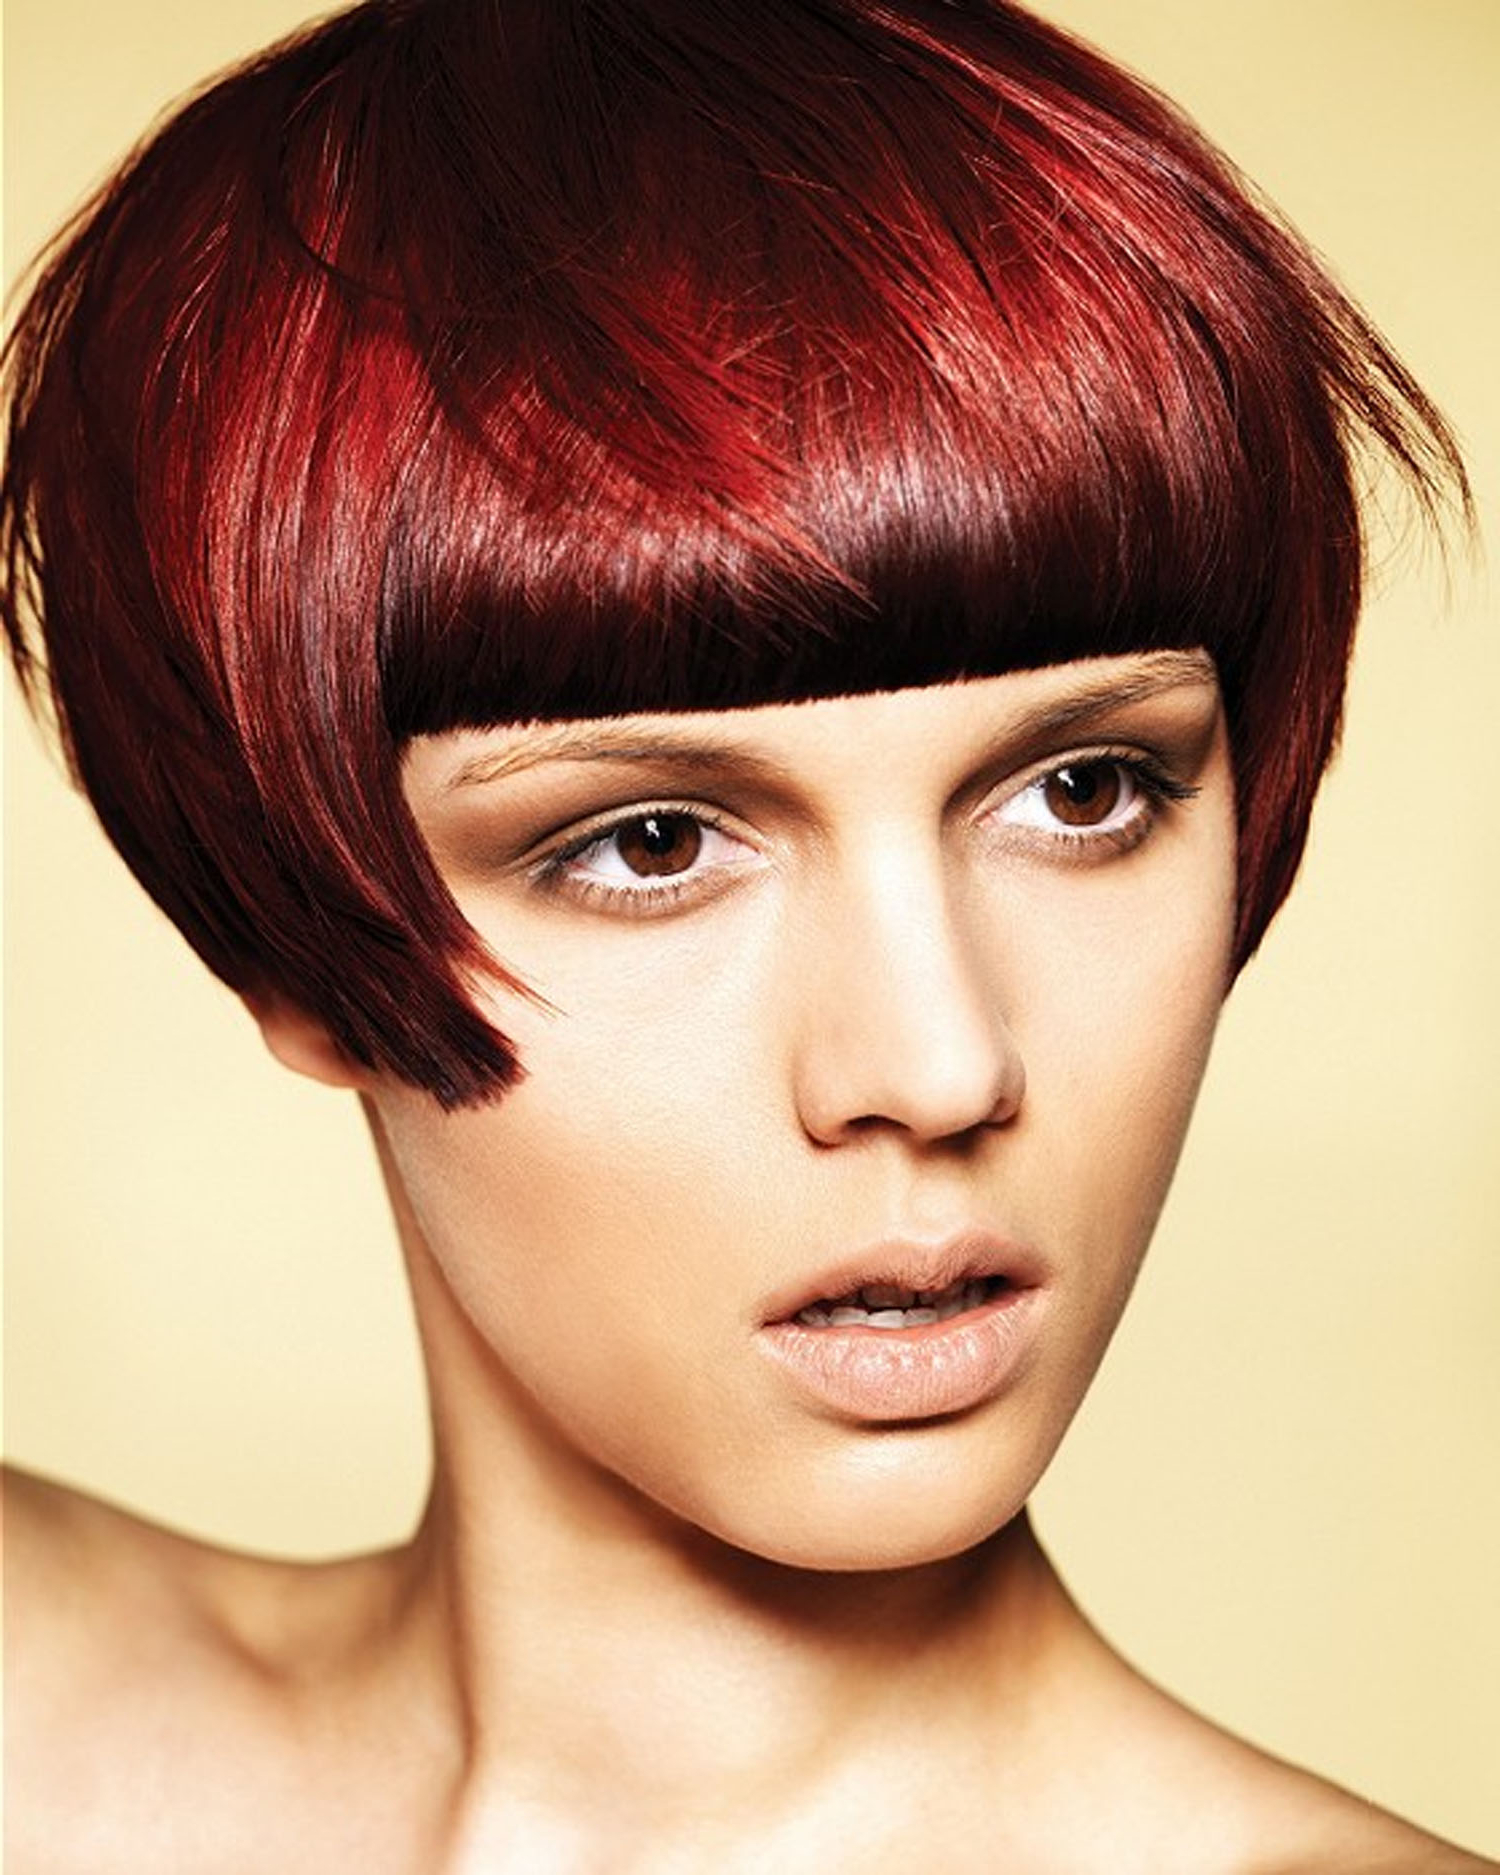 Short Hairstyles With Red Hair – Hairstyle For Women & Man Within Short Hairstyles With Red Hair (View 12 of 25)